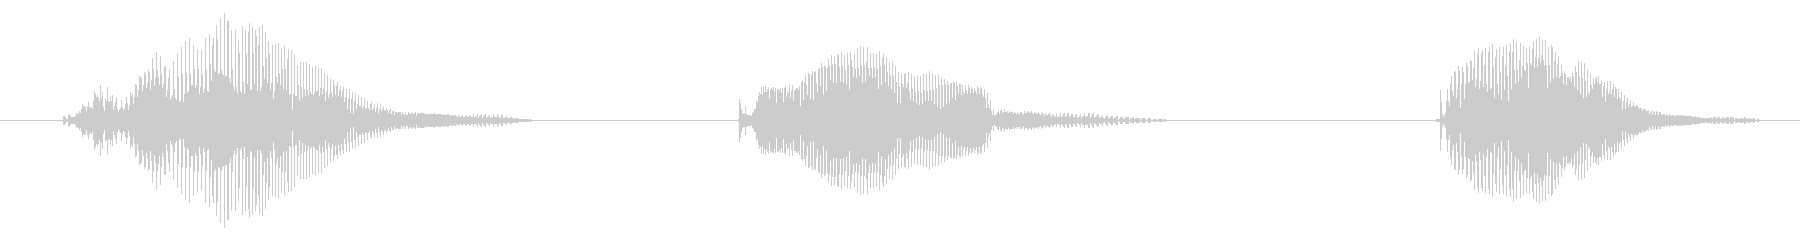 Rock-paper-scissors's unreproduced waveform